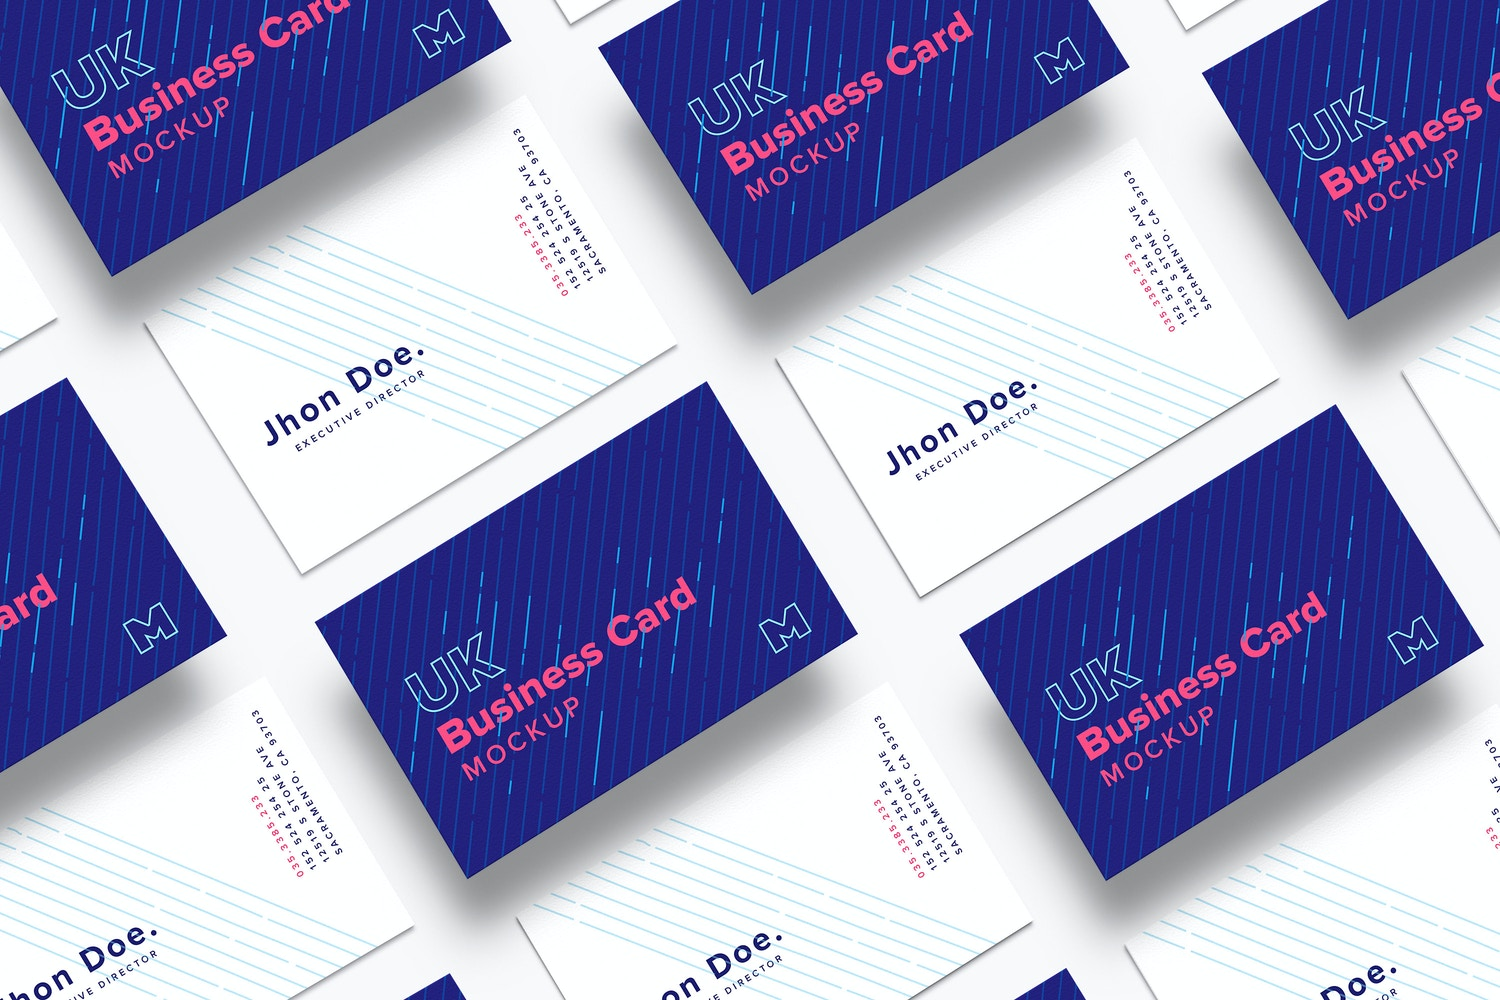 UK Business Cards Mockup 03 by Original Mockups on Original Mockups